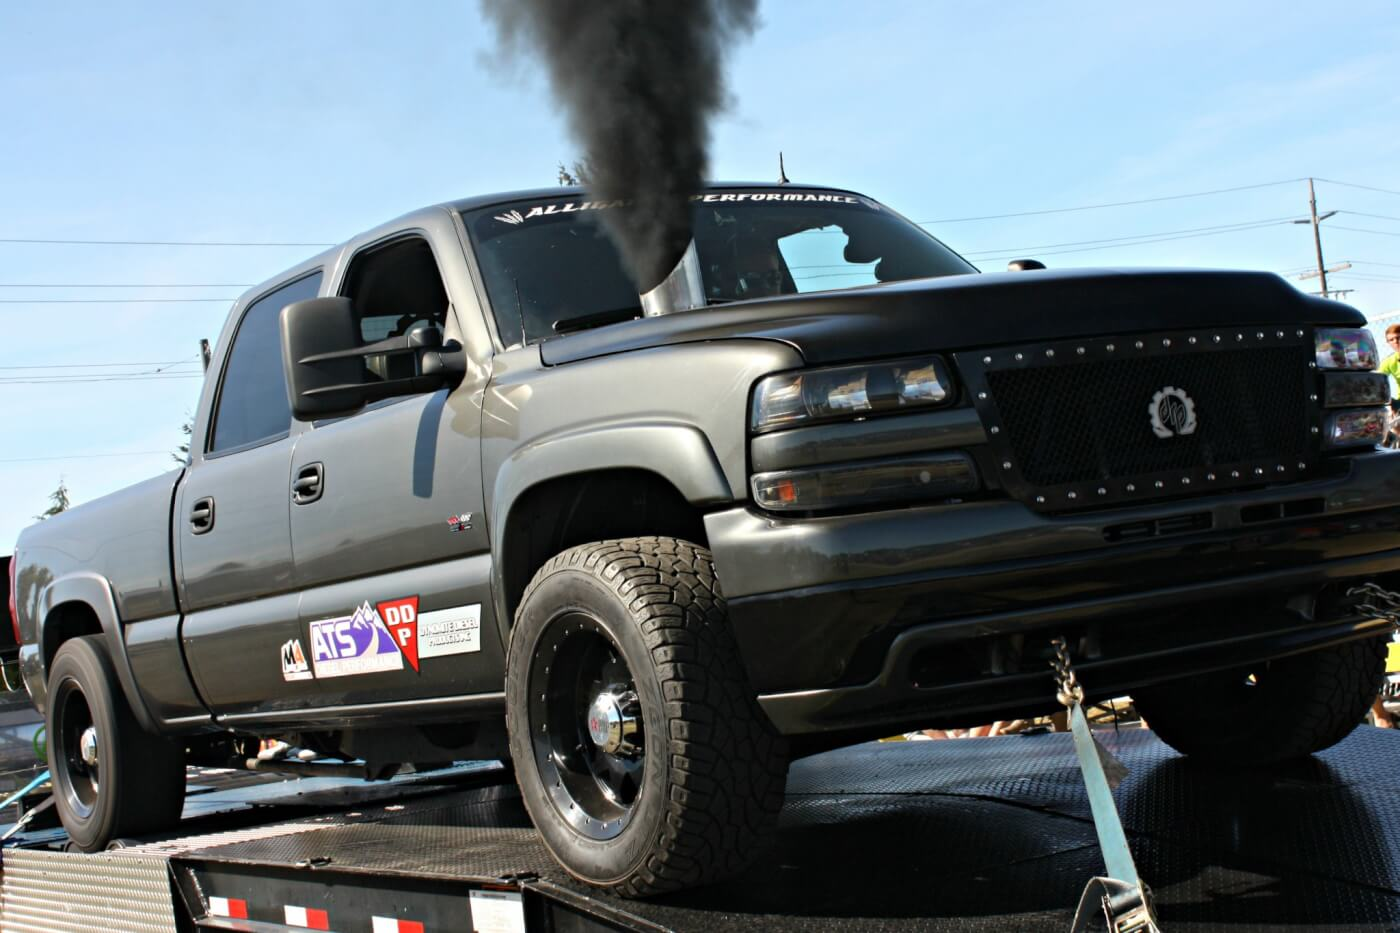 Lead fabricator at Deviant Race Parts, Chris Rosscup, owns this sporty LB7 Duramax with countless hours and hard work into a full engine and transmission build that ended up rolling over 1,000 hp on the Auto Trends Motorsports portable chassis dyno.